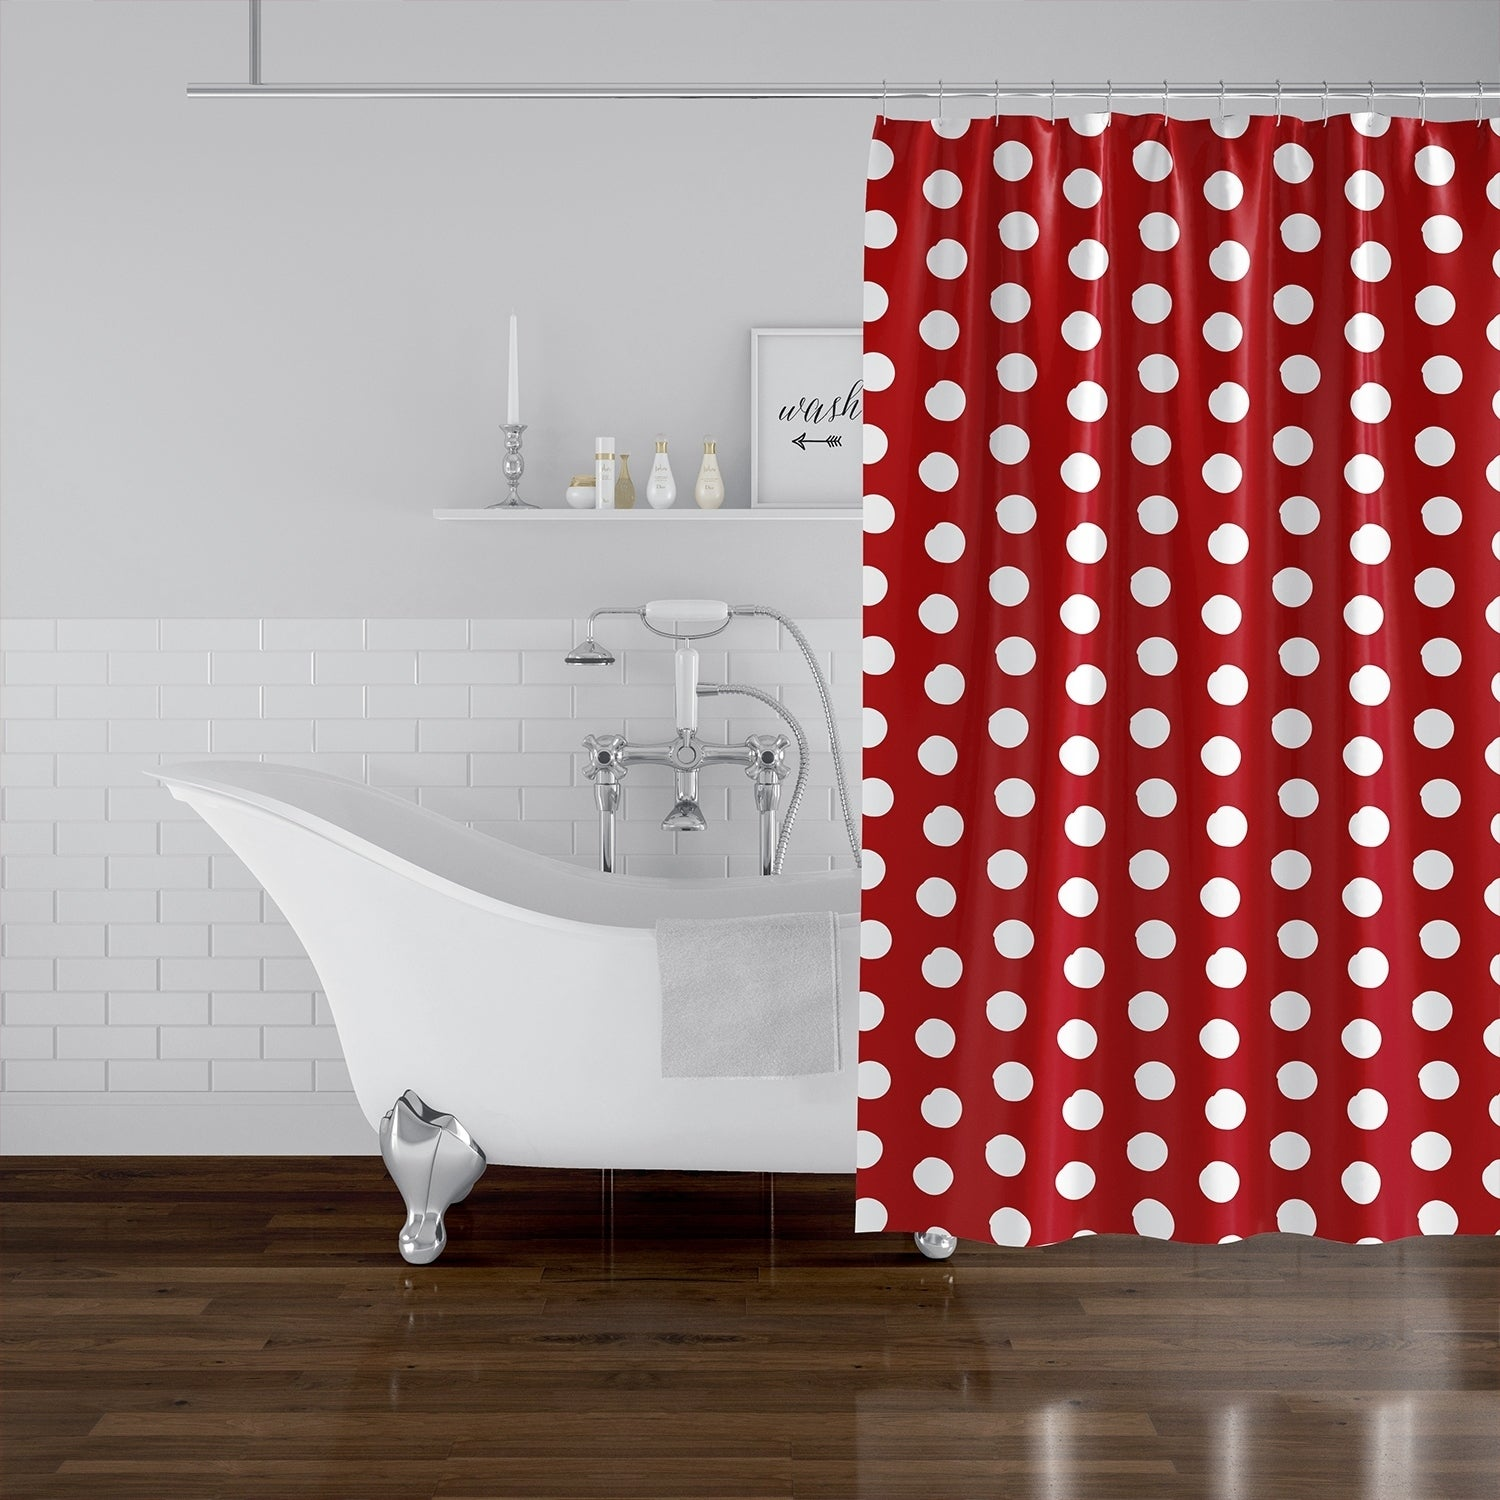 Shop Black Friday Deals On Big Polka Dots Red Shower Curtain By Kavka Designs Overstock 30497520